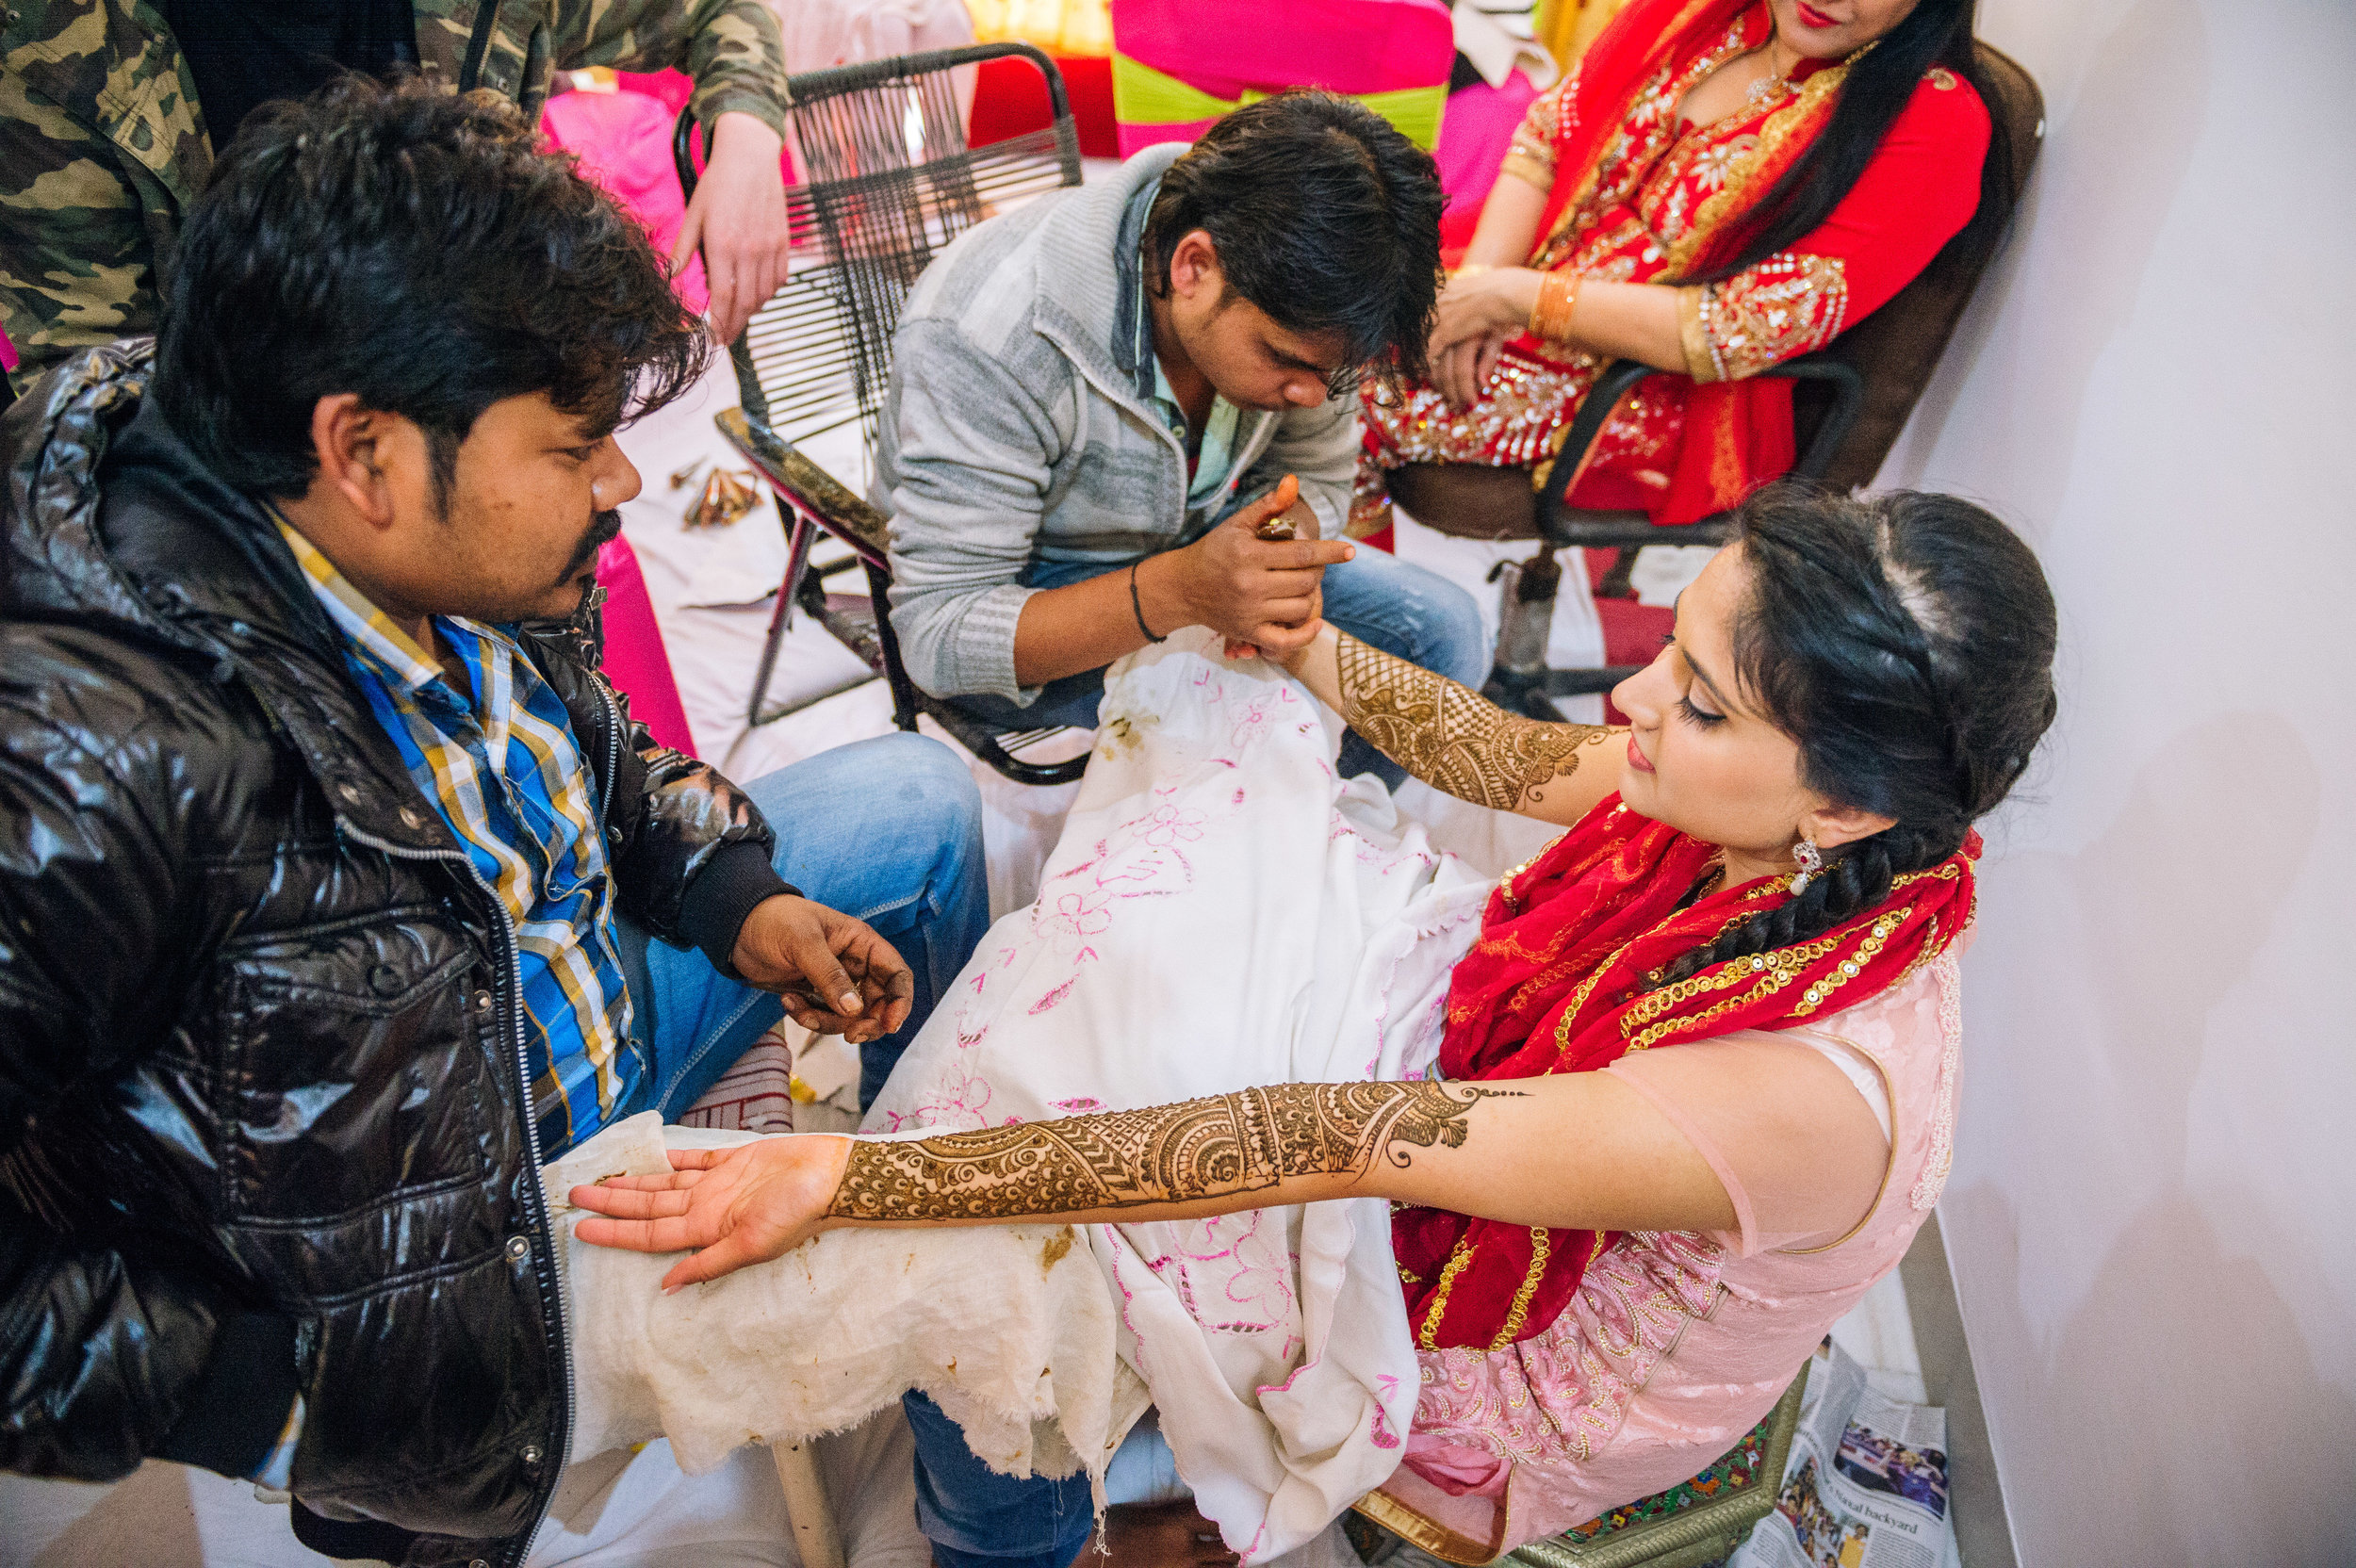 The bride-to-be's mehendi is the most intricate and most time consuming to execute hence the need for 2 professional mehendi artist for this bride-to-be.